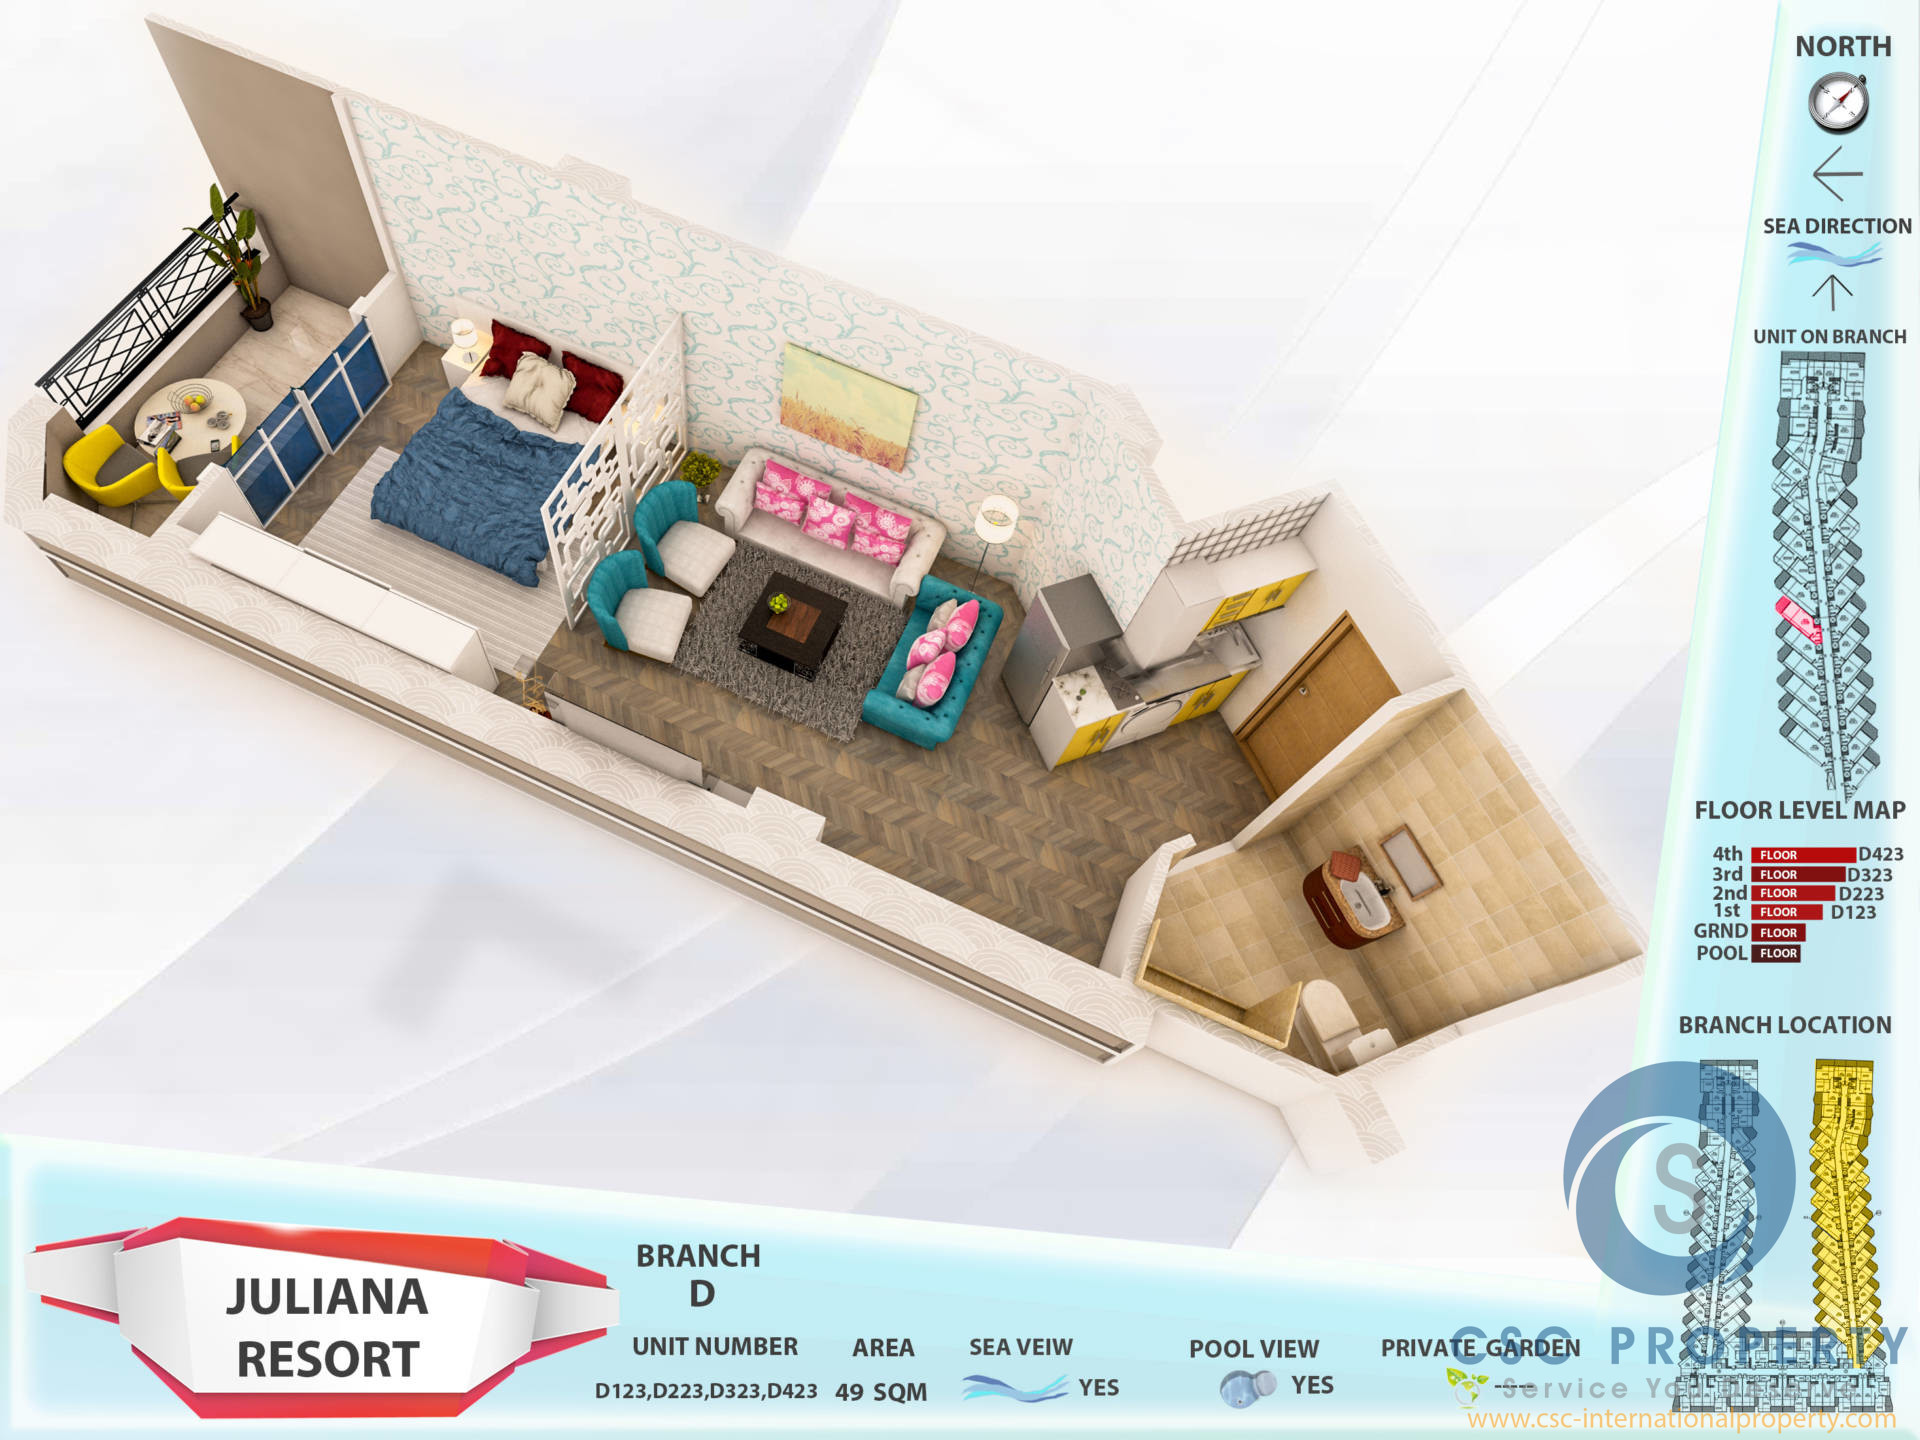 Offer – Studio pool view from 510000 EGP